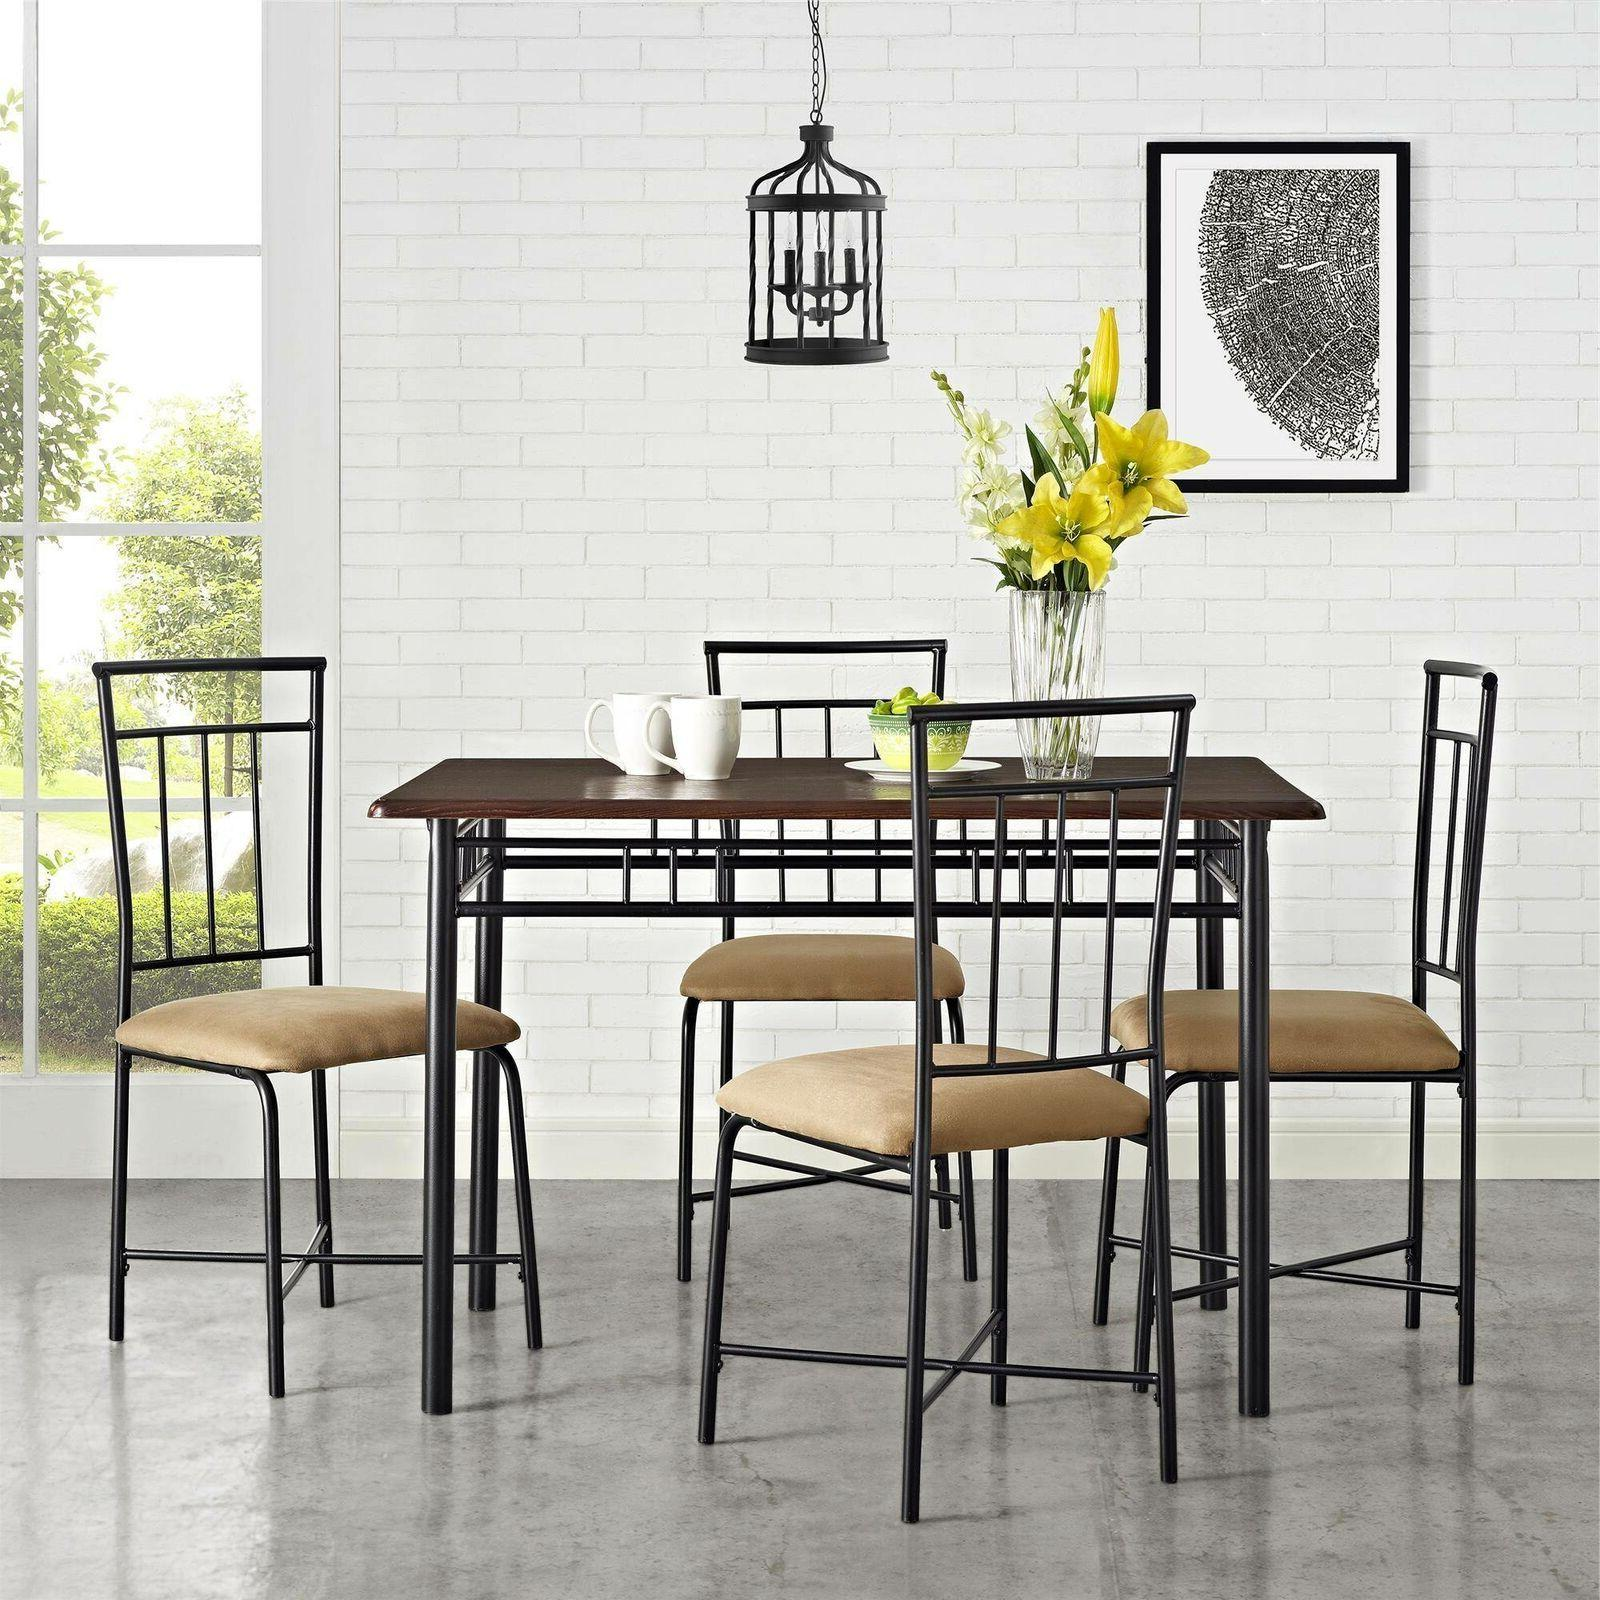 5 five piece dining set brown sturdy